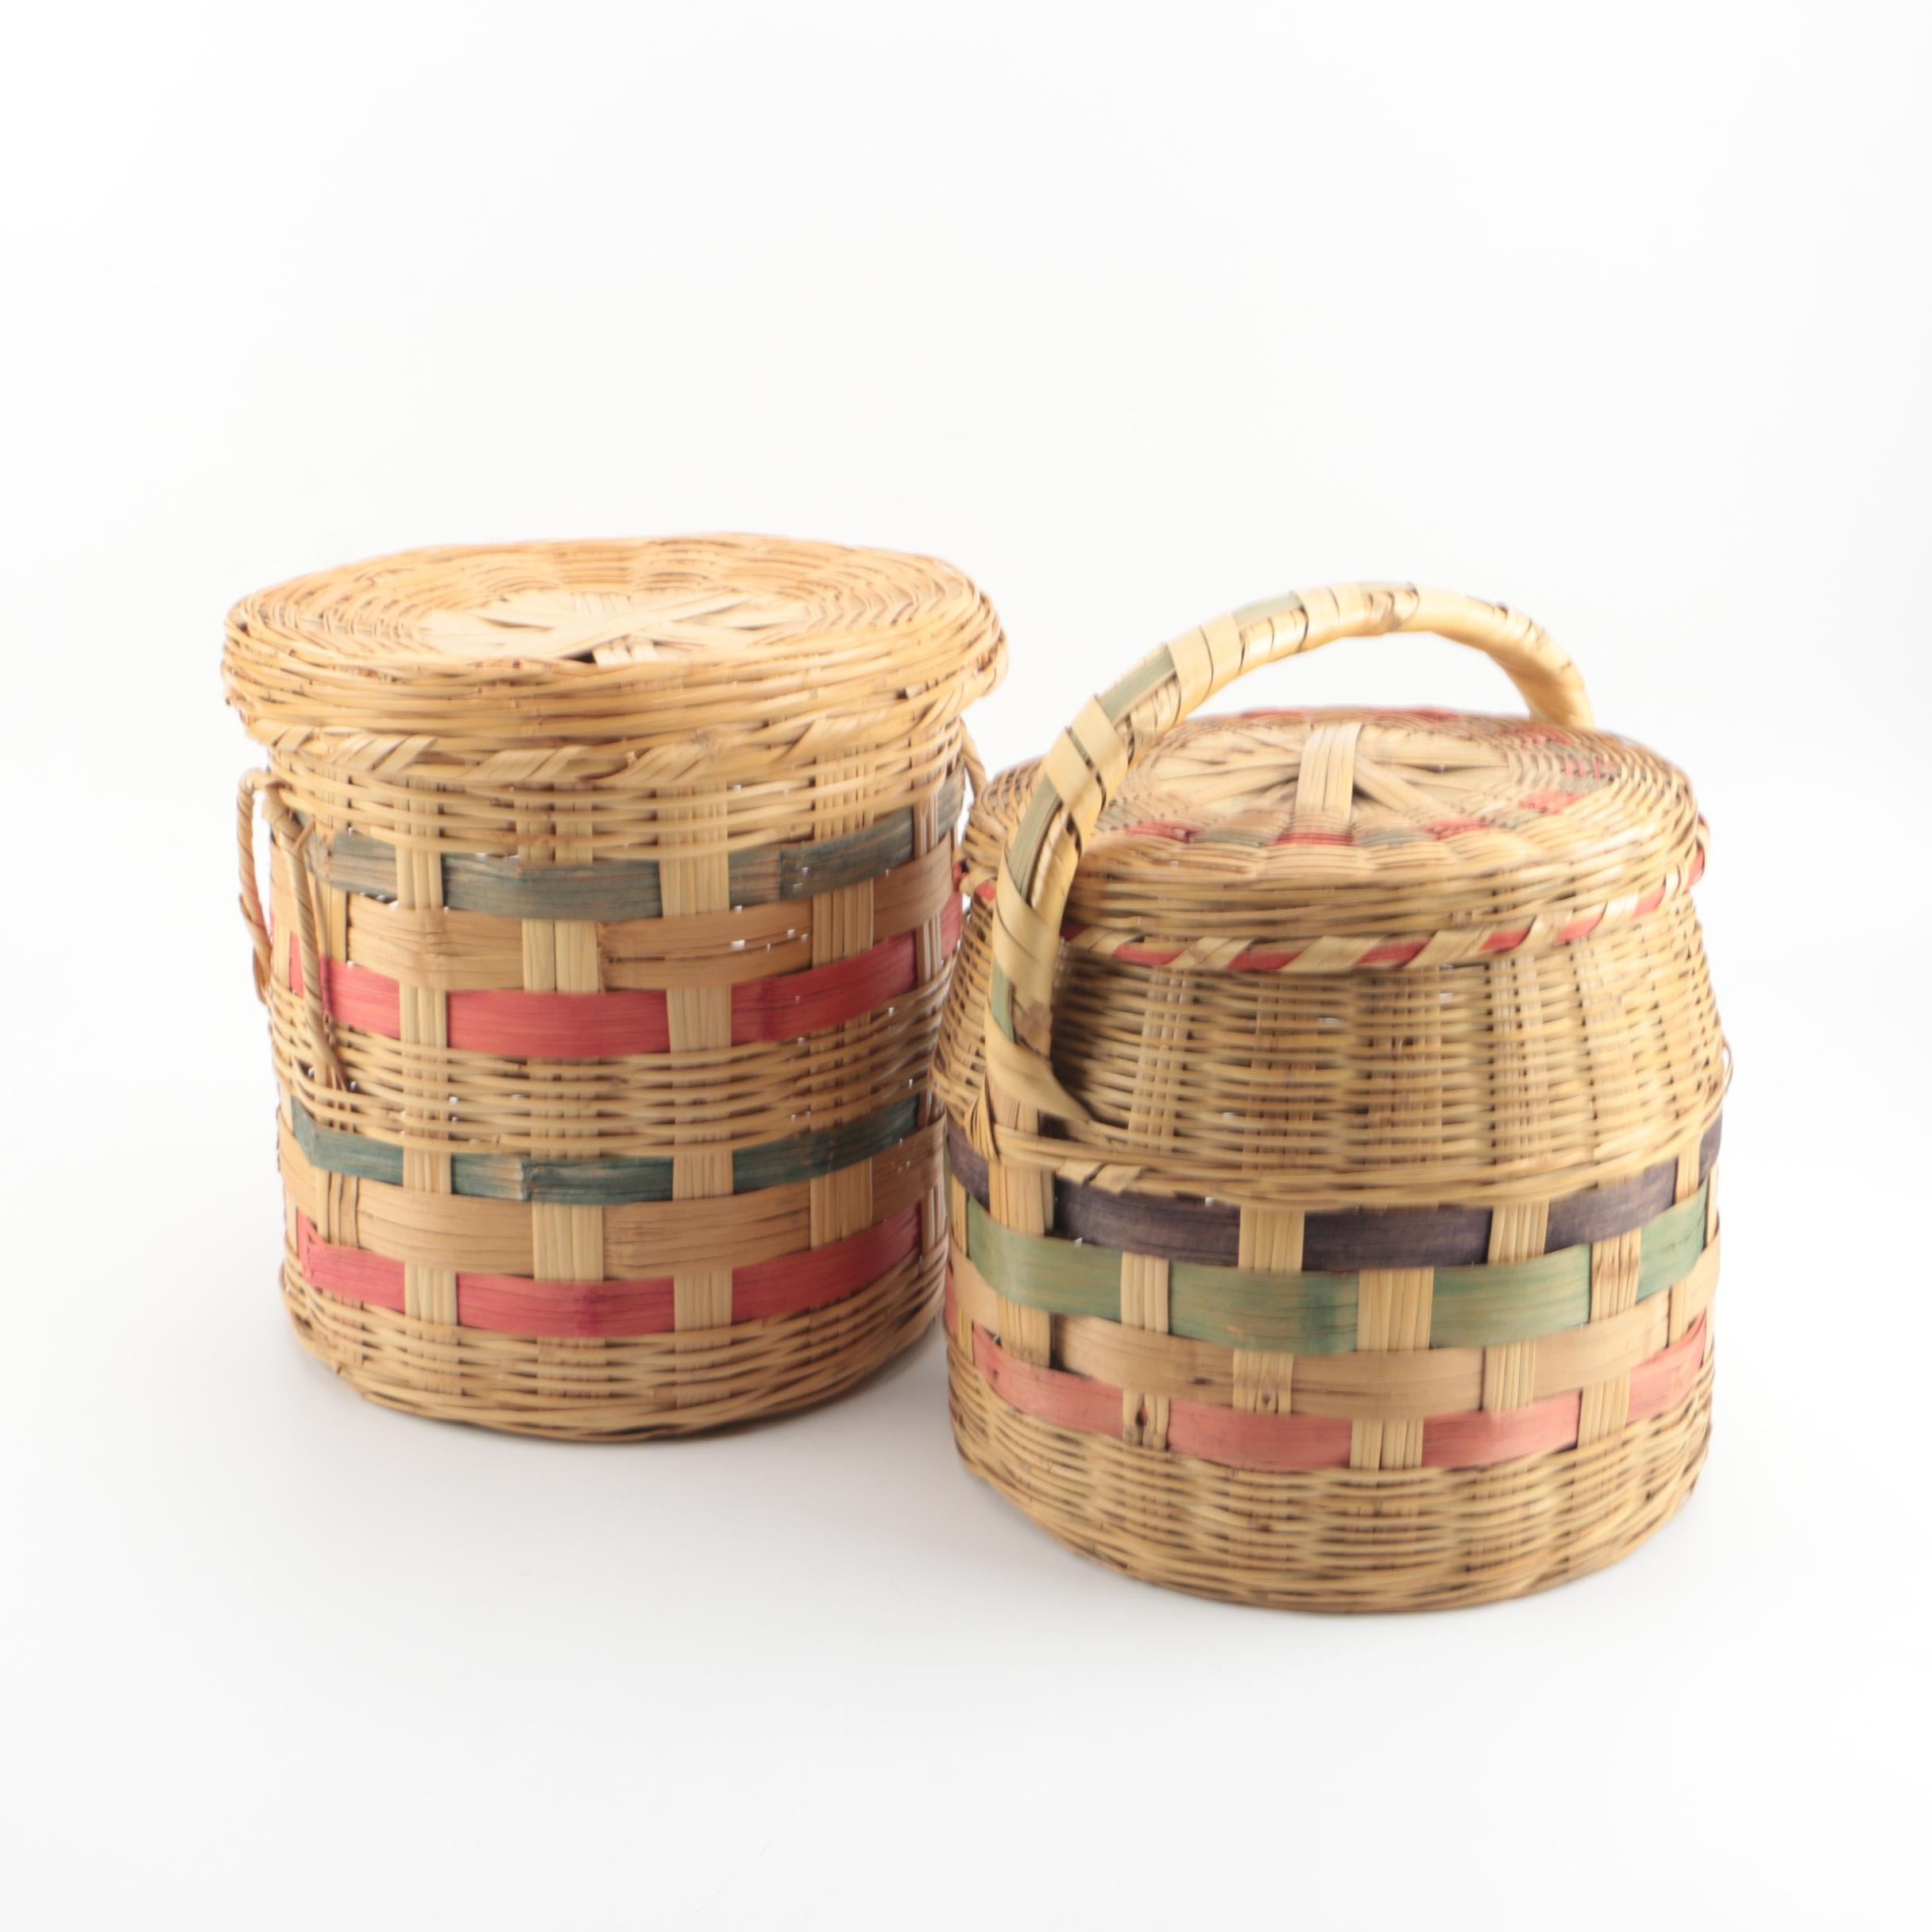 Woven Baskets with Lids